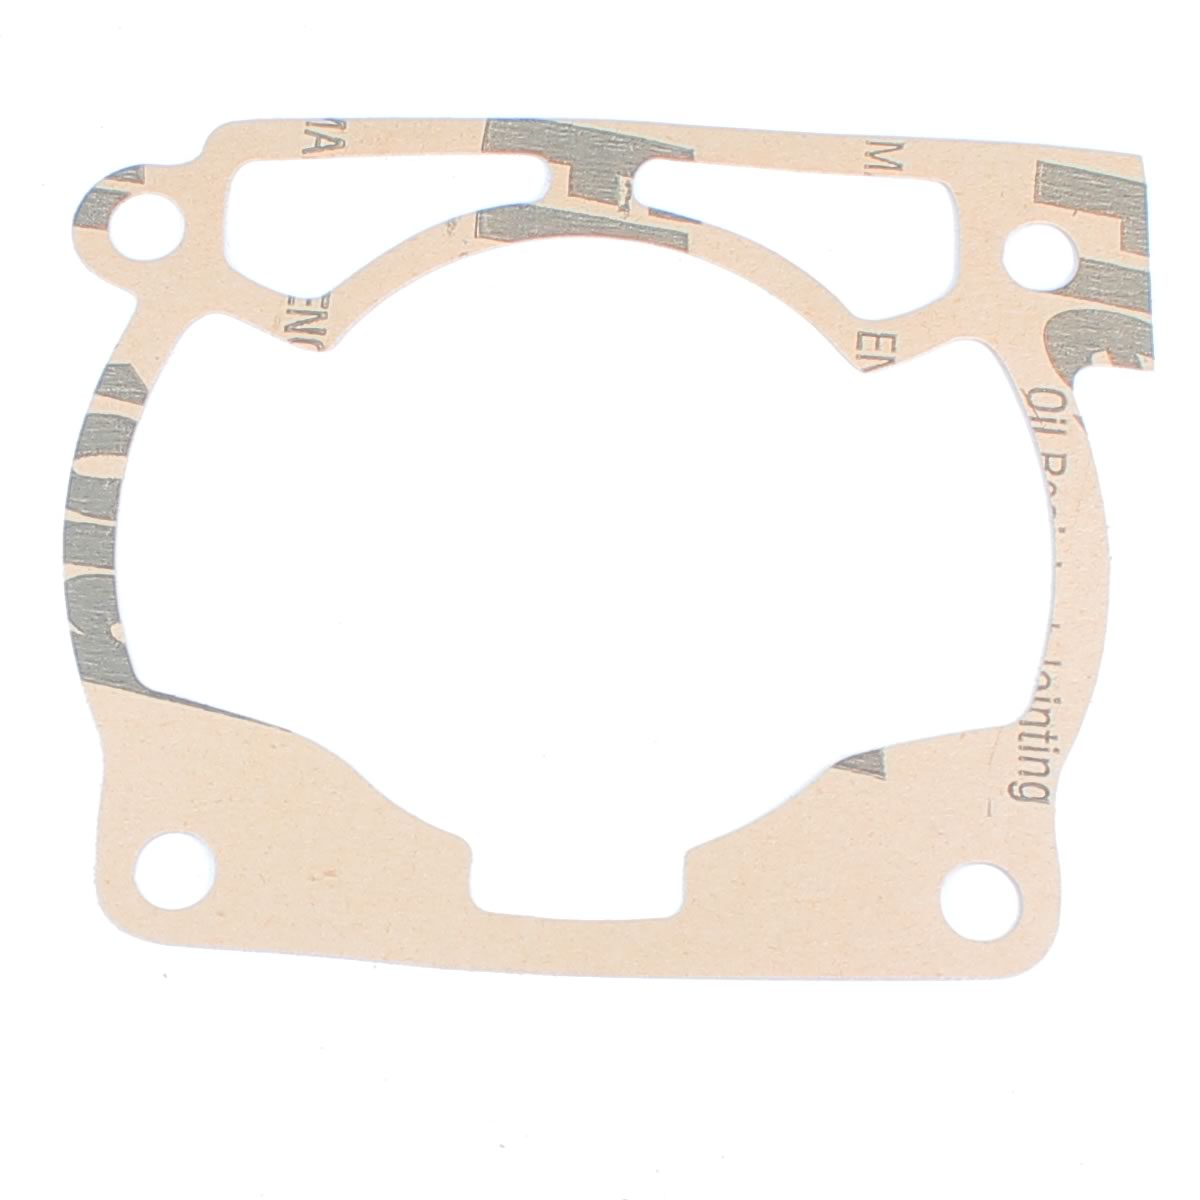 Beta RR 250 300 2014-2019 2T Water Pump Cover Gasket